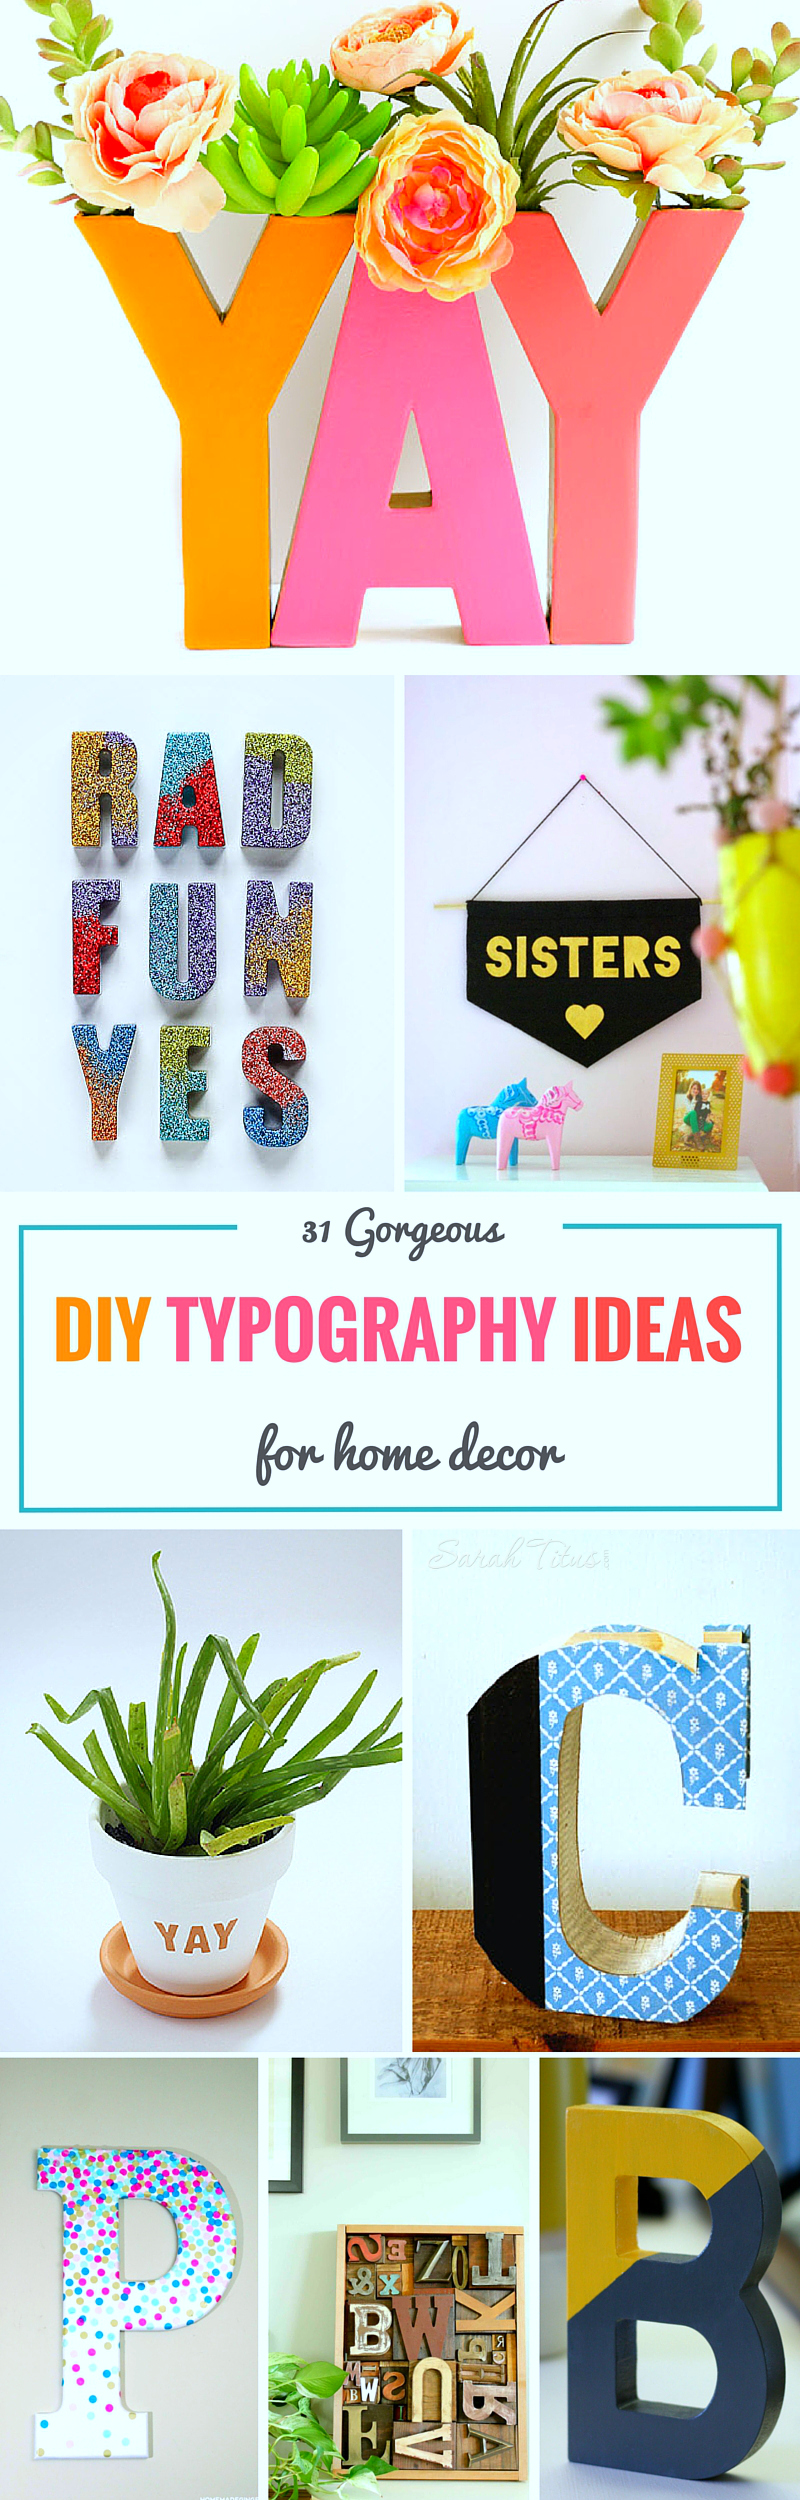 31 Gorgeous DIY Typography Ideas for Home Decor Sarah Titus